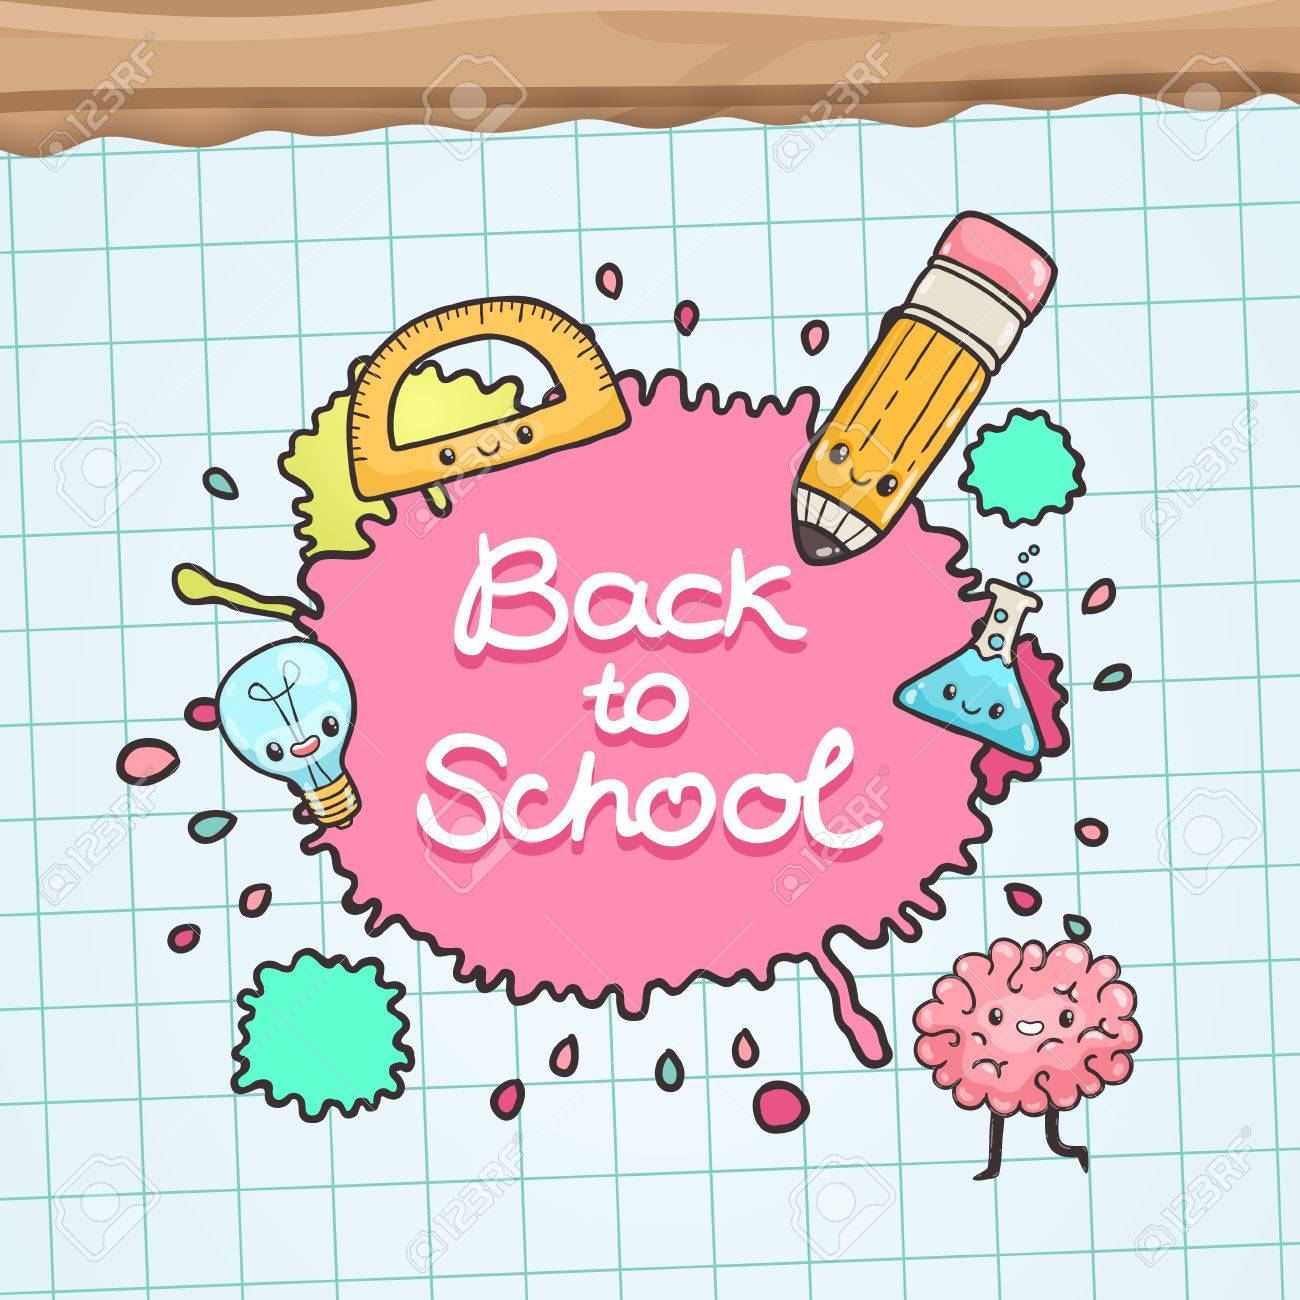 Cute Cartoon Characters Back To School Background Royalty Free Cliparts Vectors And Stock Illustration Image 31289202